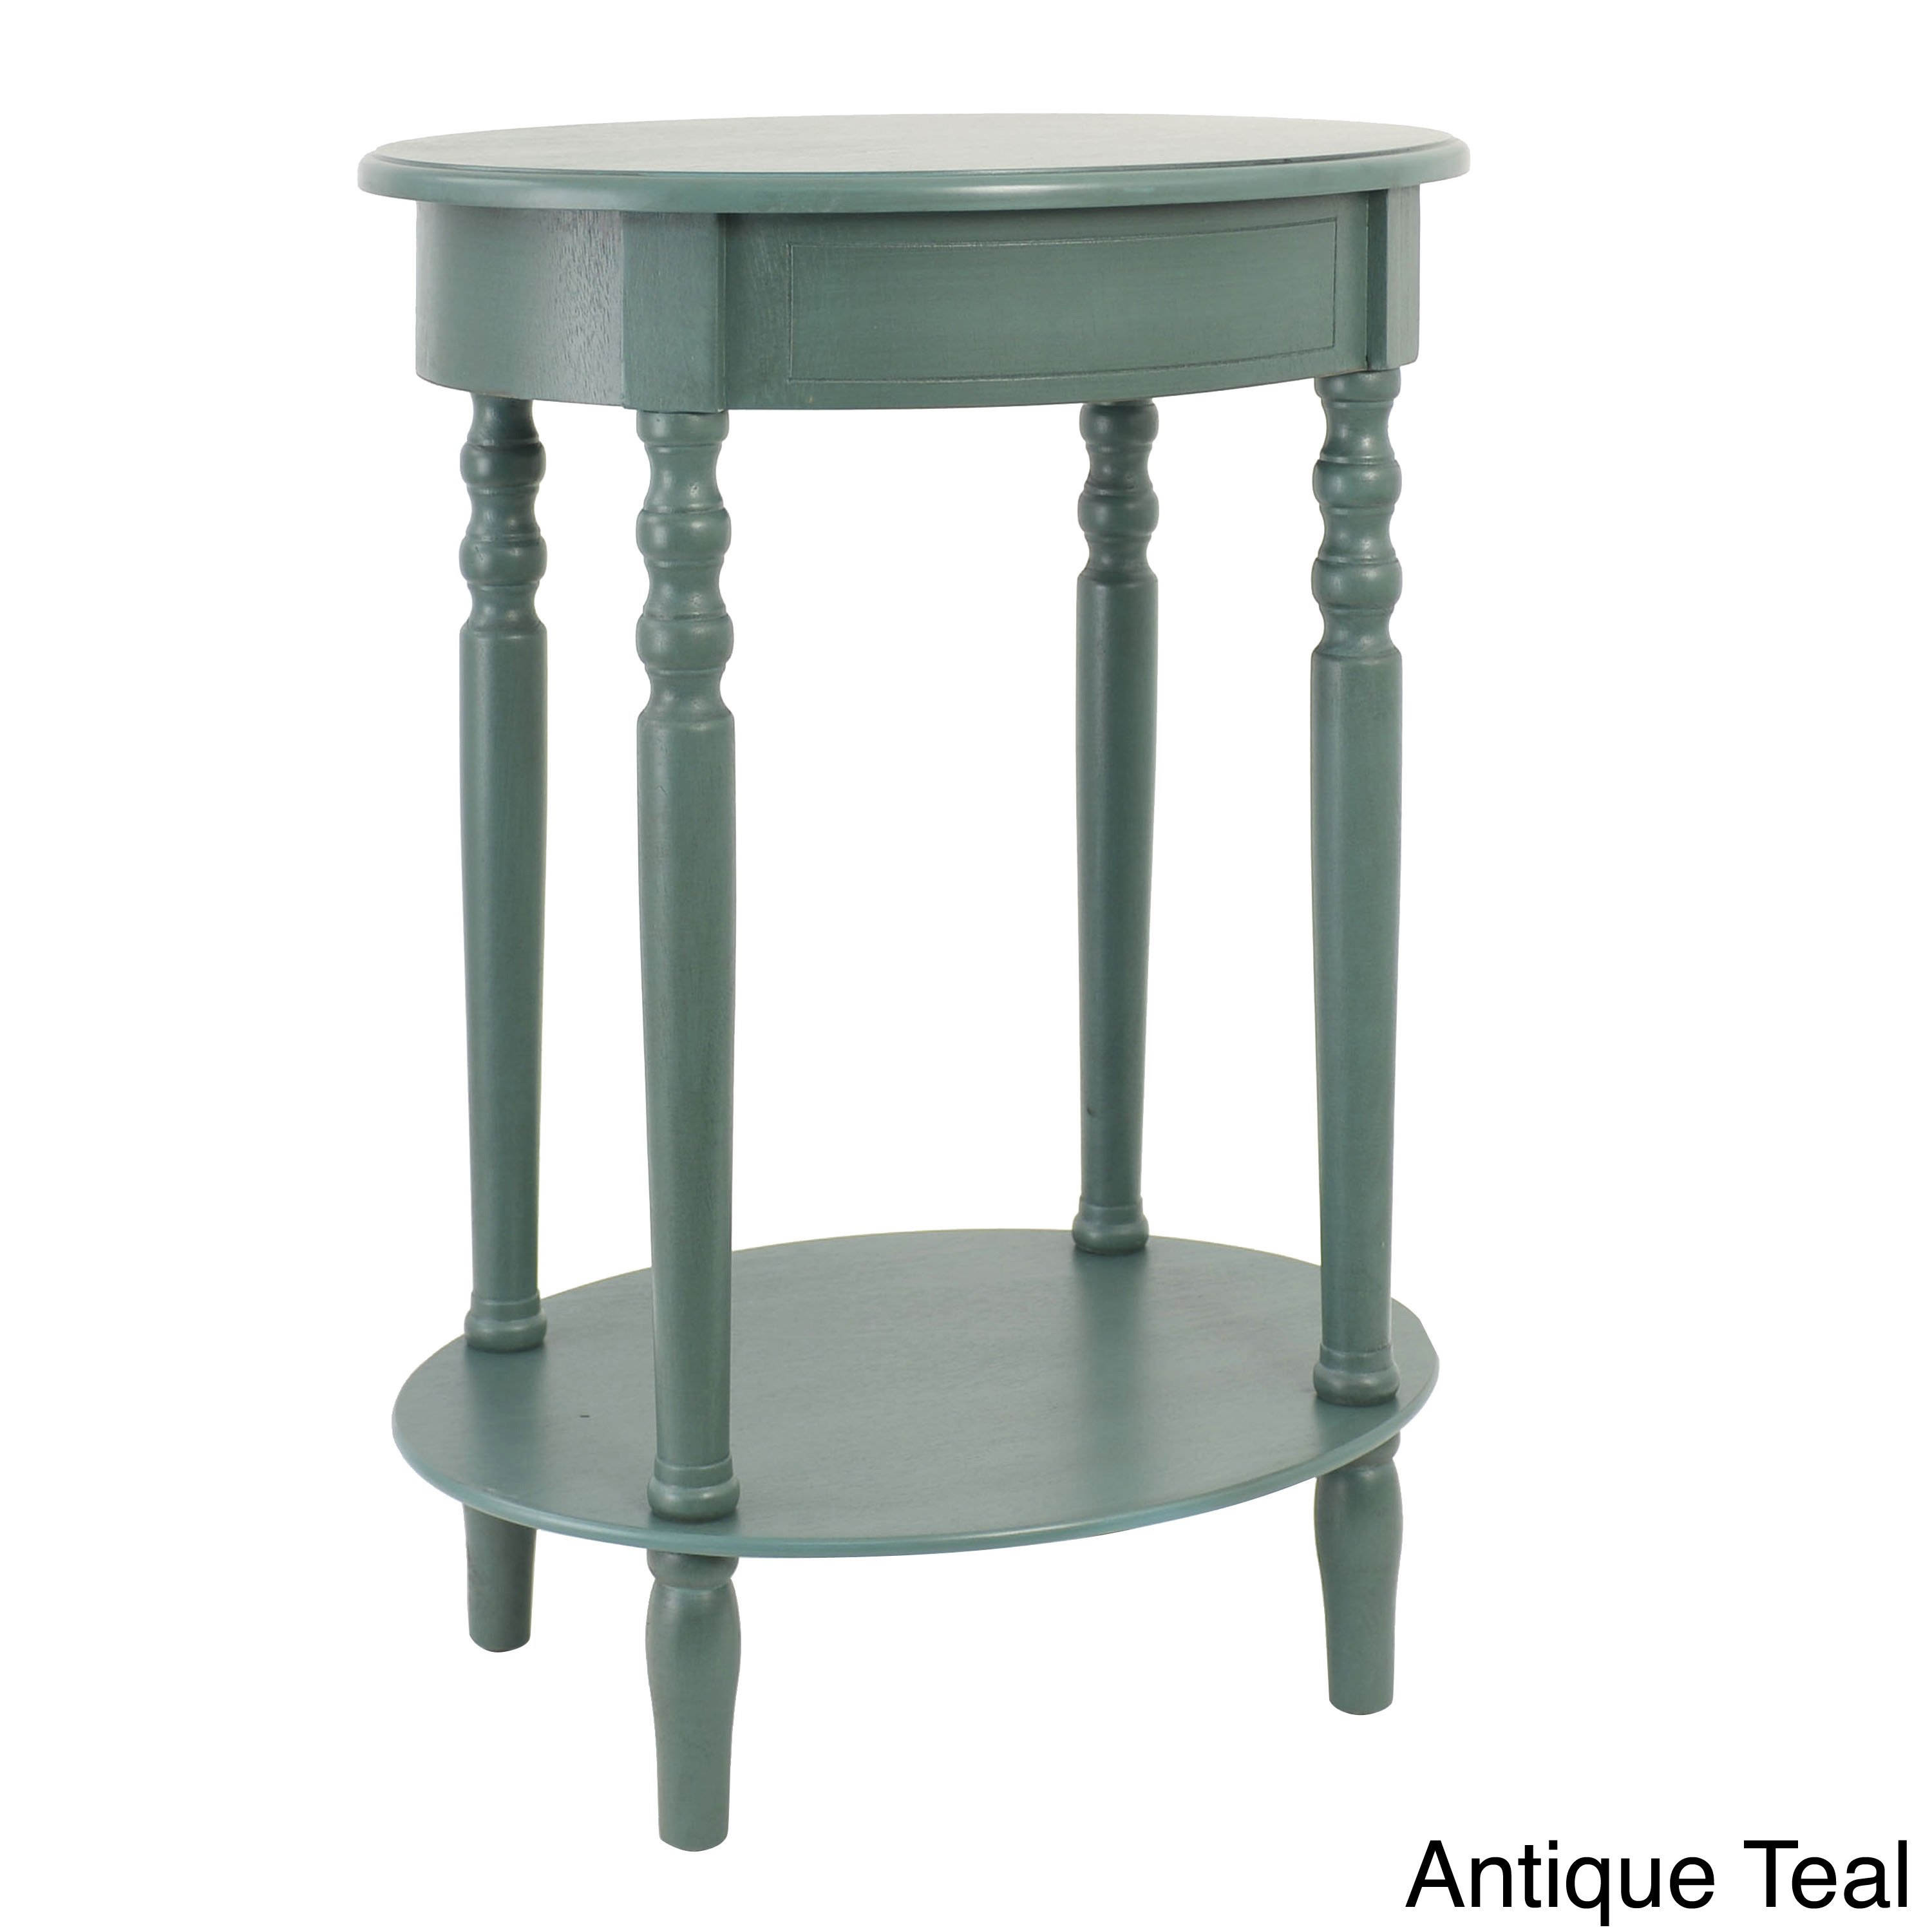 maison rouge provins oval accent table wood finish espresso antique blue teal retractable patio umbrella pier round tablecloths gold square coffee glass and brushed nickel end